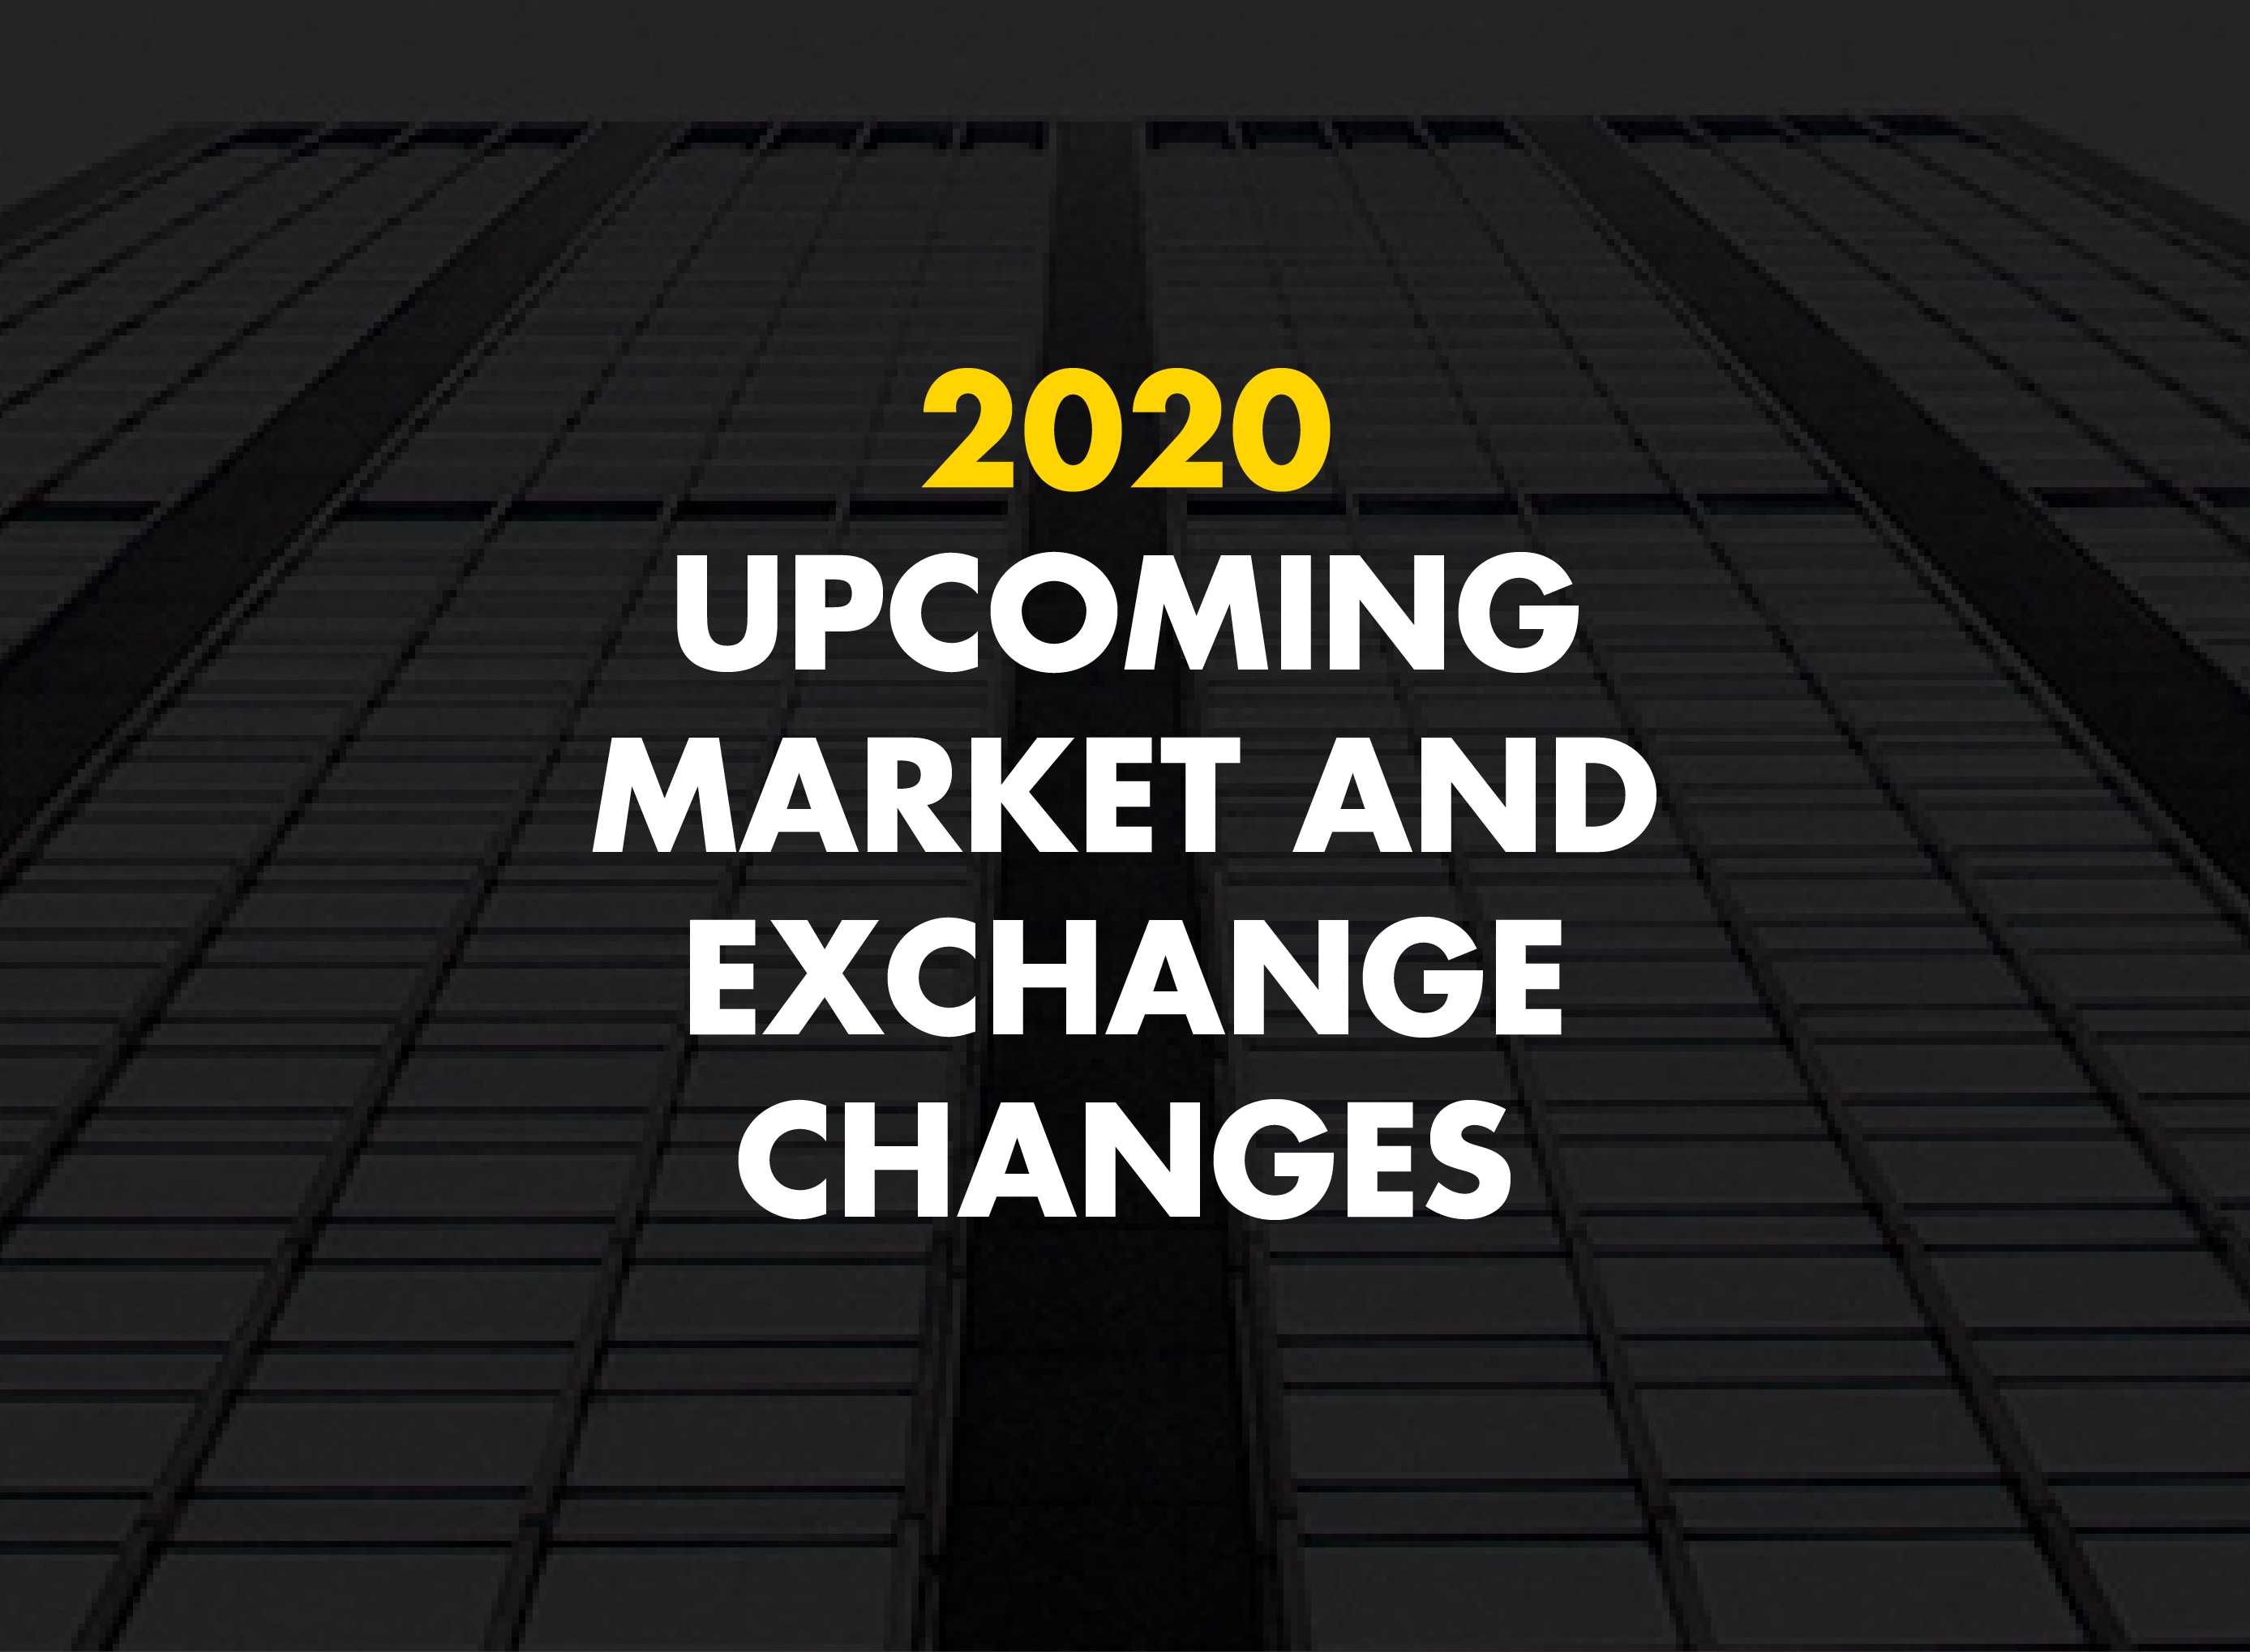 2020 Upcoming market and exchange-driven changes